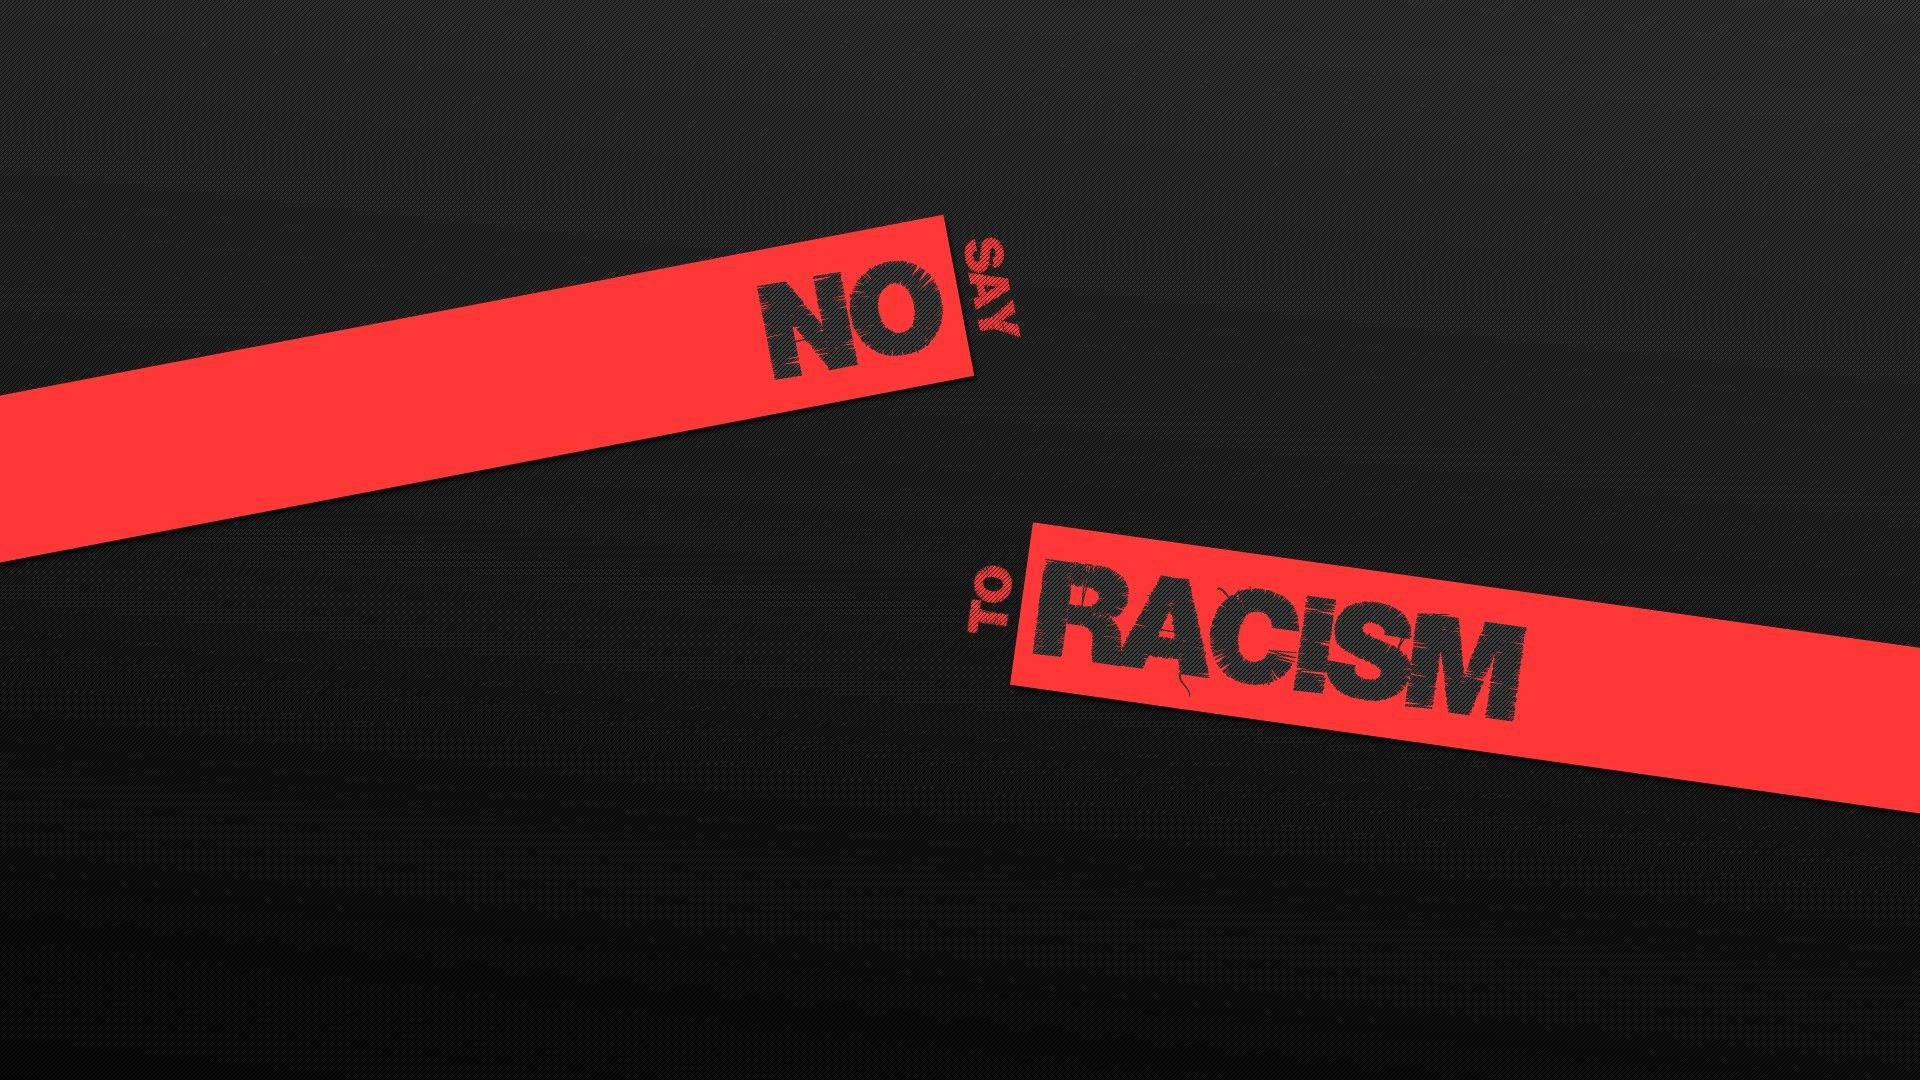 Best 62+ Racism Wallpapers on HipWallpapers